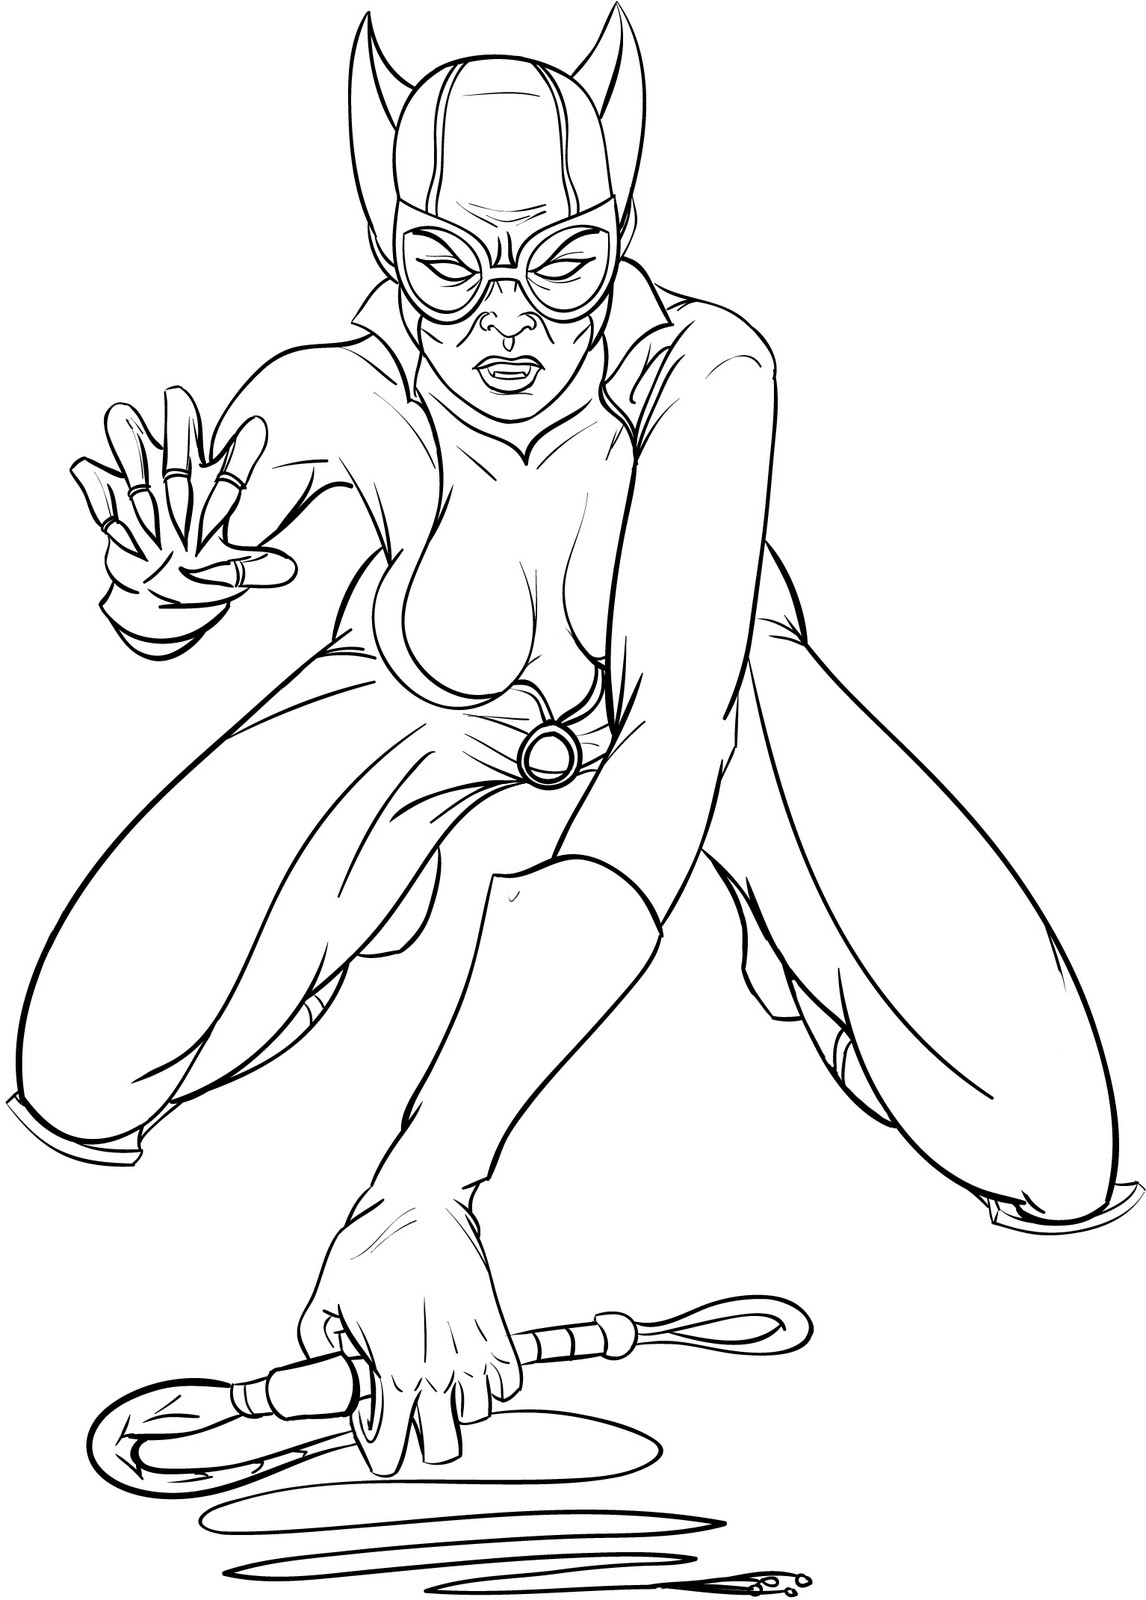 catwoman coloring pages catwoman coloring pages to download and print for free pages catwoman coloring